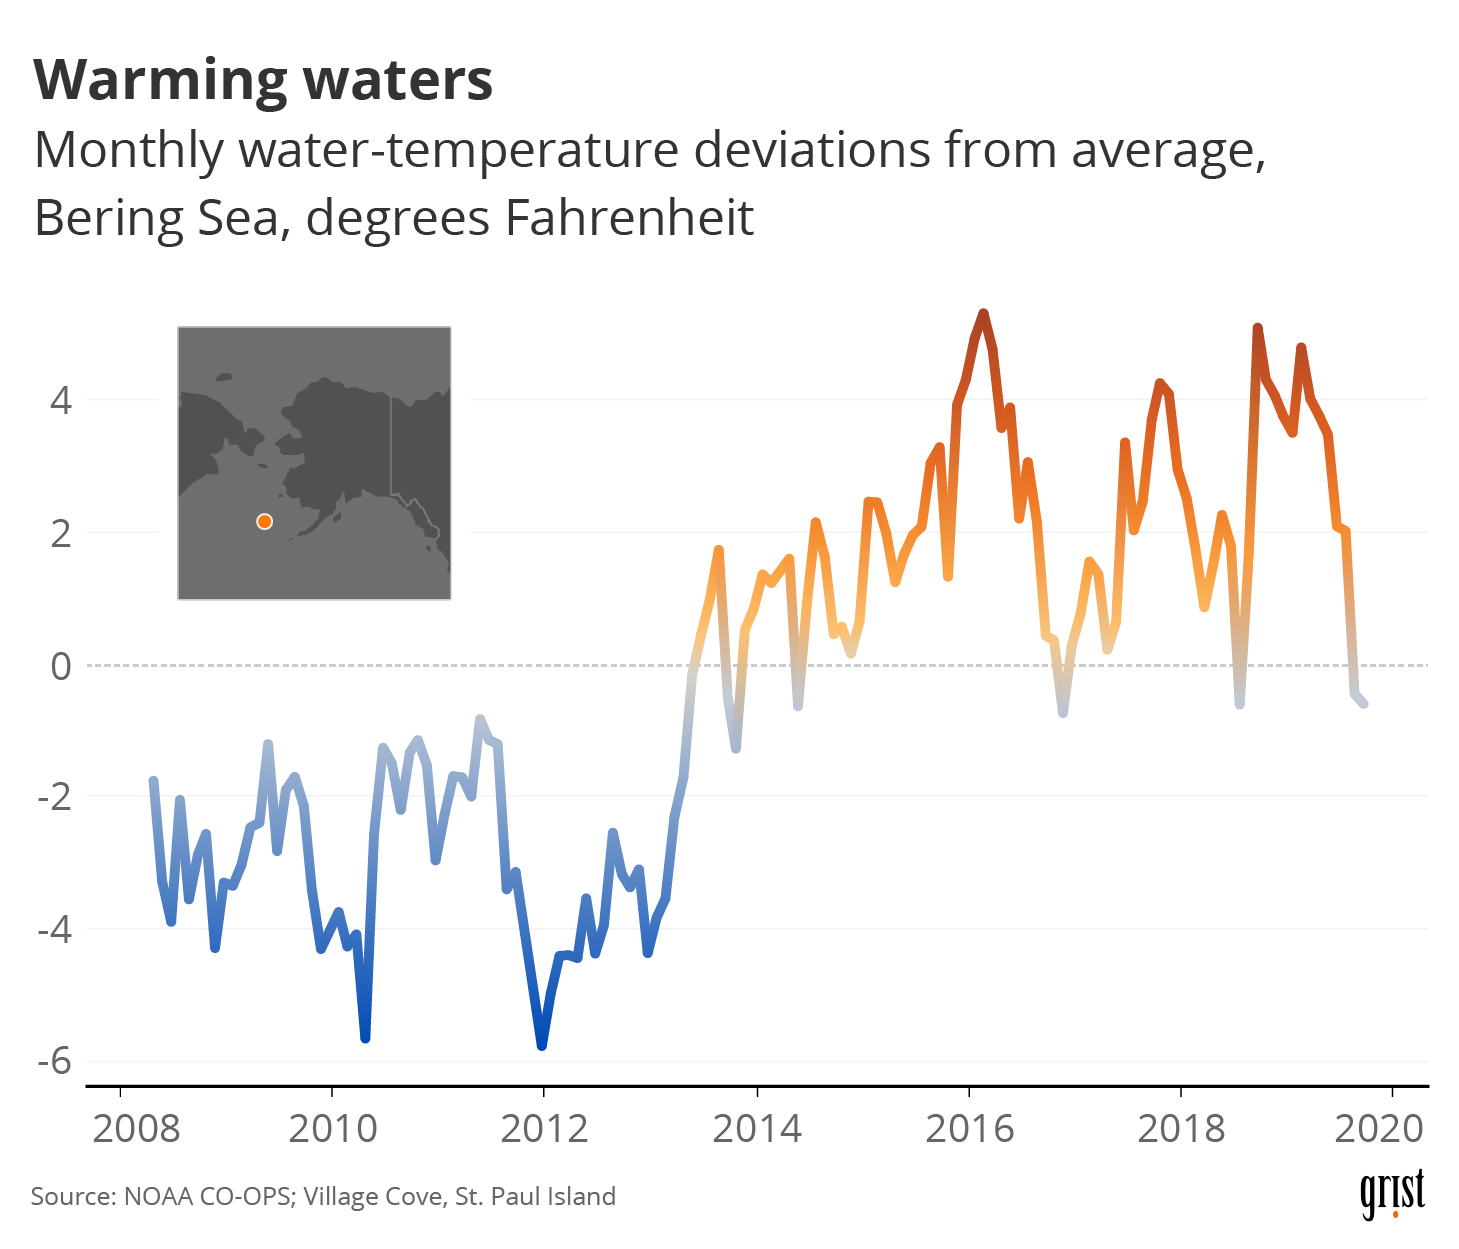 A line chart showing rising water-temperature deviations from average in the Bering Sea. Recent water temperatures are about 4 degrees Fahrenheit above average. An inset map shows the location of the Bering Sea, off the southwest coast of Alaska.